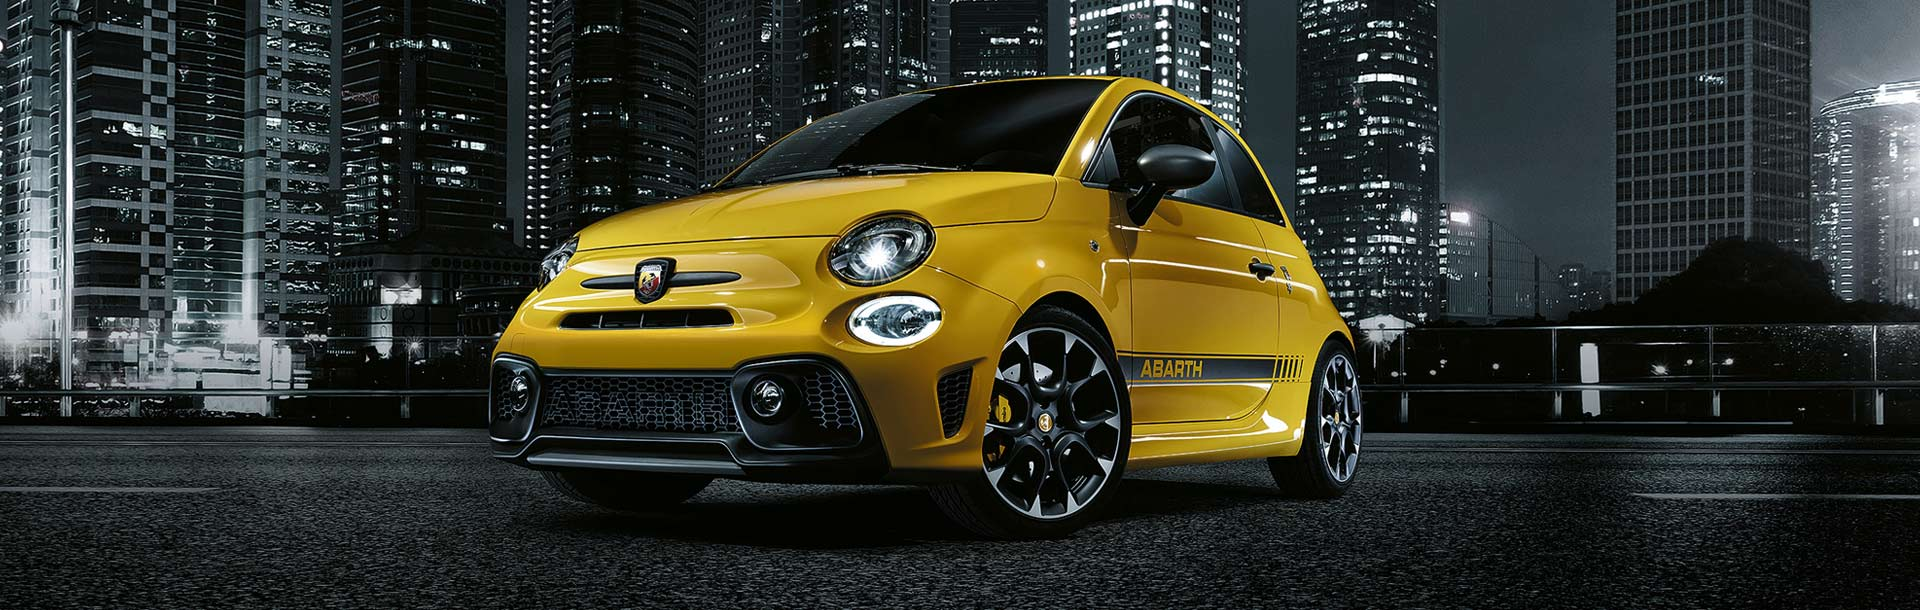 Car Financial Services >> Abarth Cars Uk Financial Services Car Finance